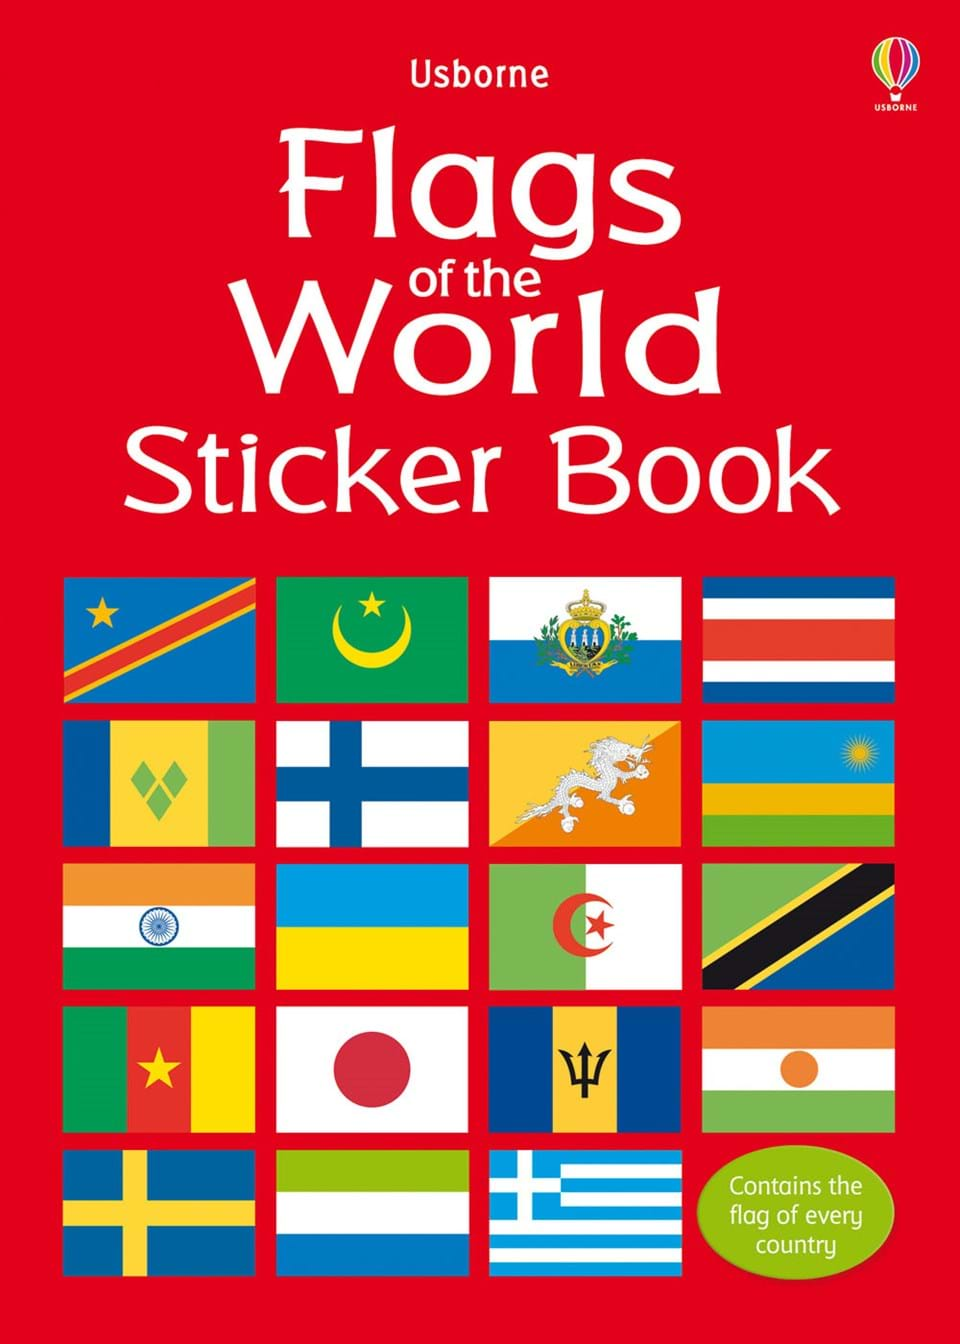 flags of the world sticker book at usborne books at home. Black Bedroom Furniture Sets. Home Design Ideas